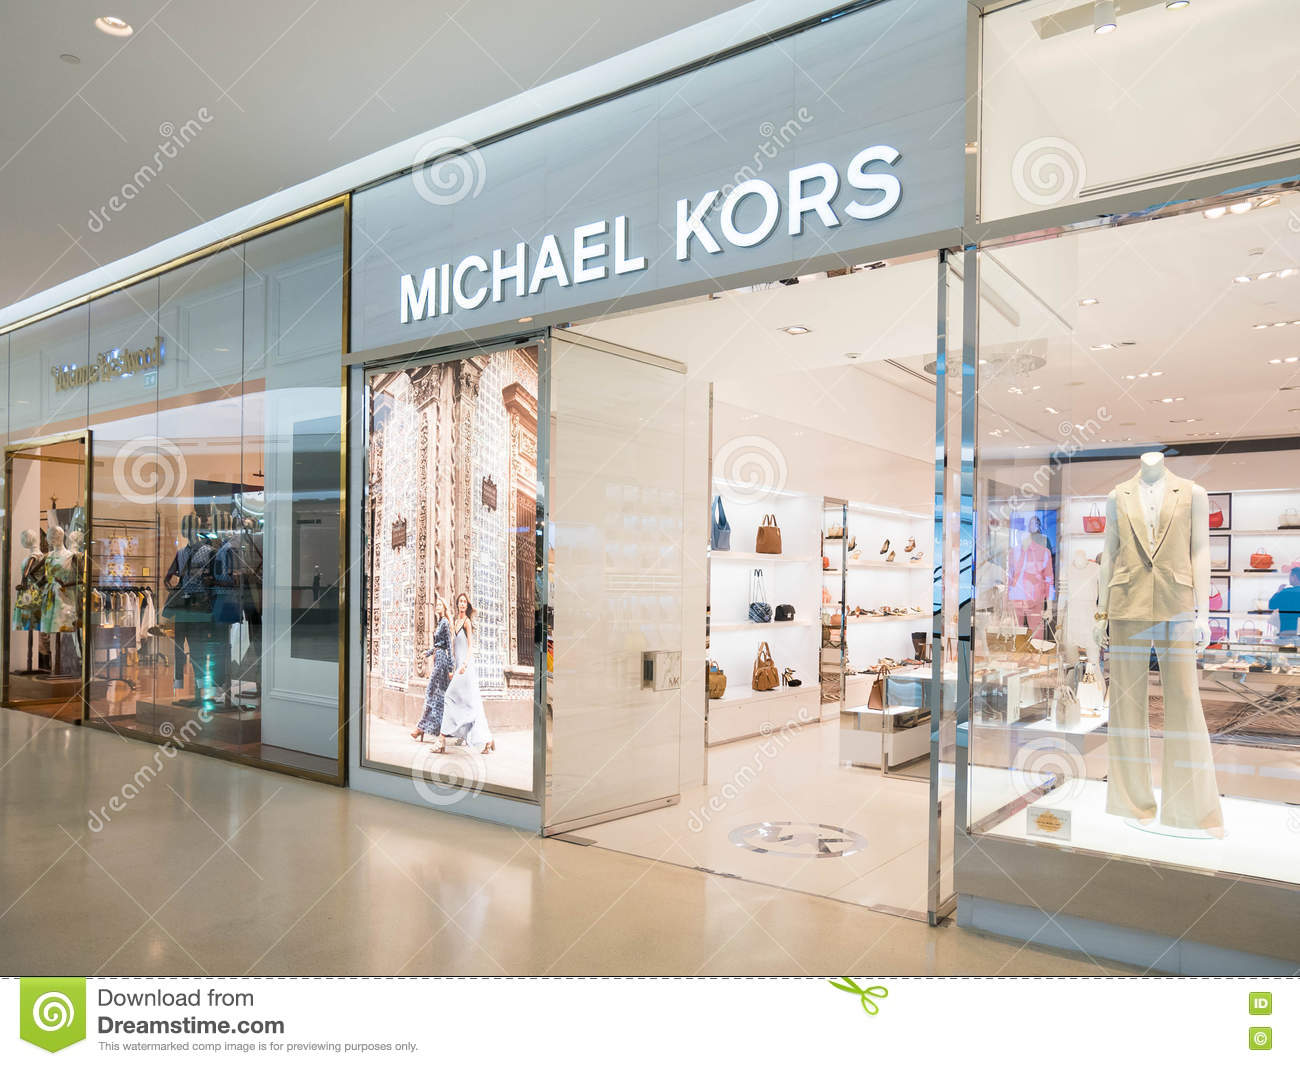 775fafc7dc63 Bangkok, Thailand - May 6, 2016 : Interior of Michael Kors store display at  Central Embassy the Luxury Shopping Mall downtown in Bangkok, Thailand.